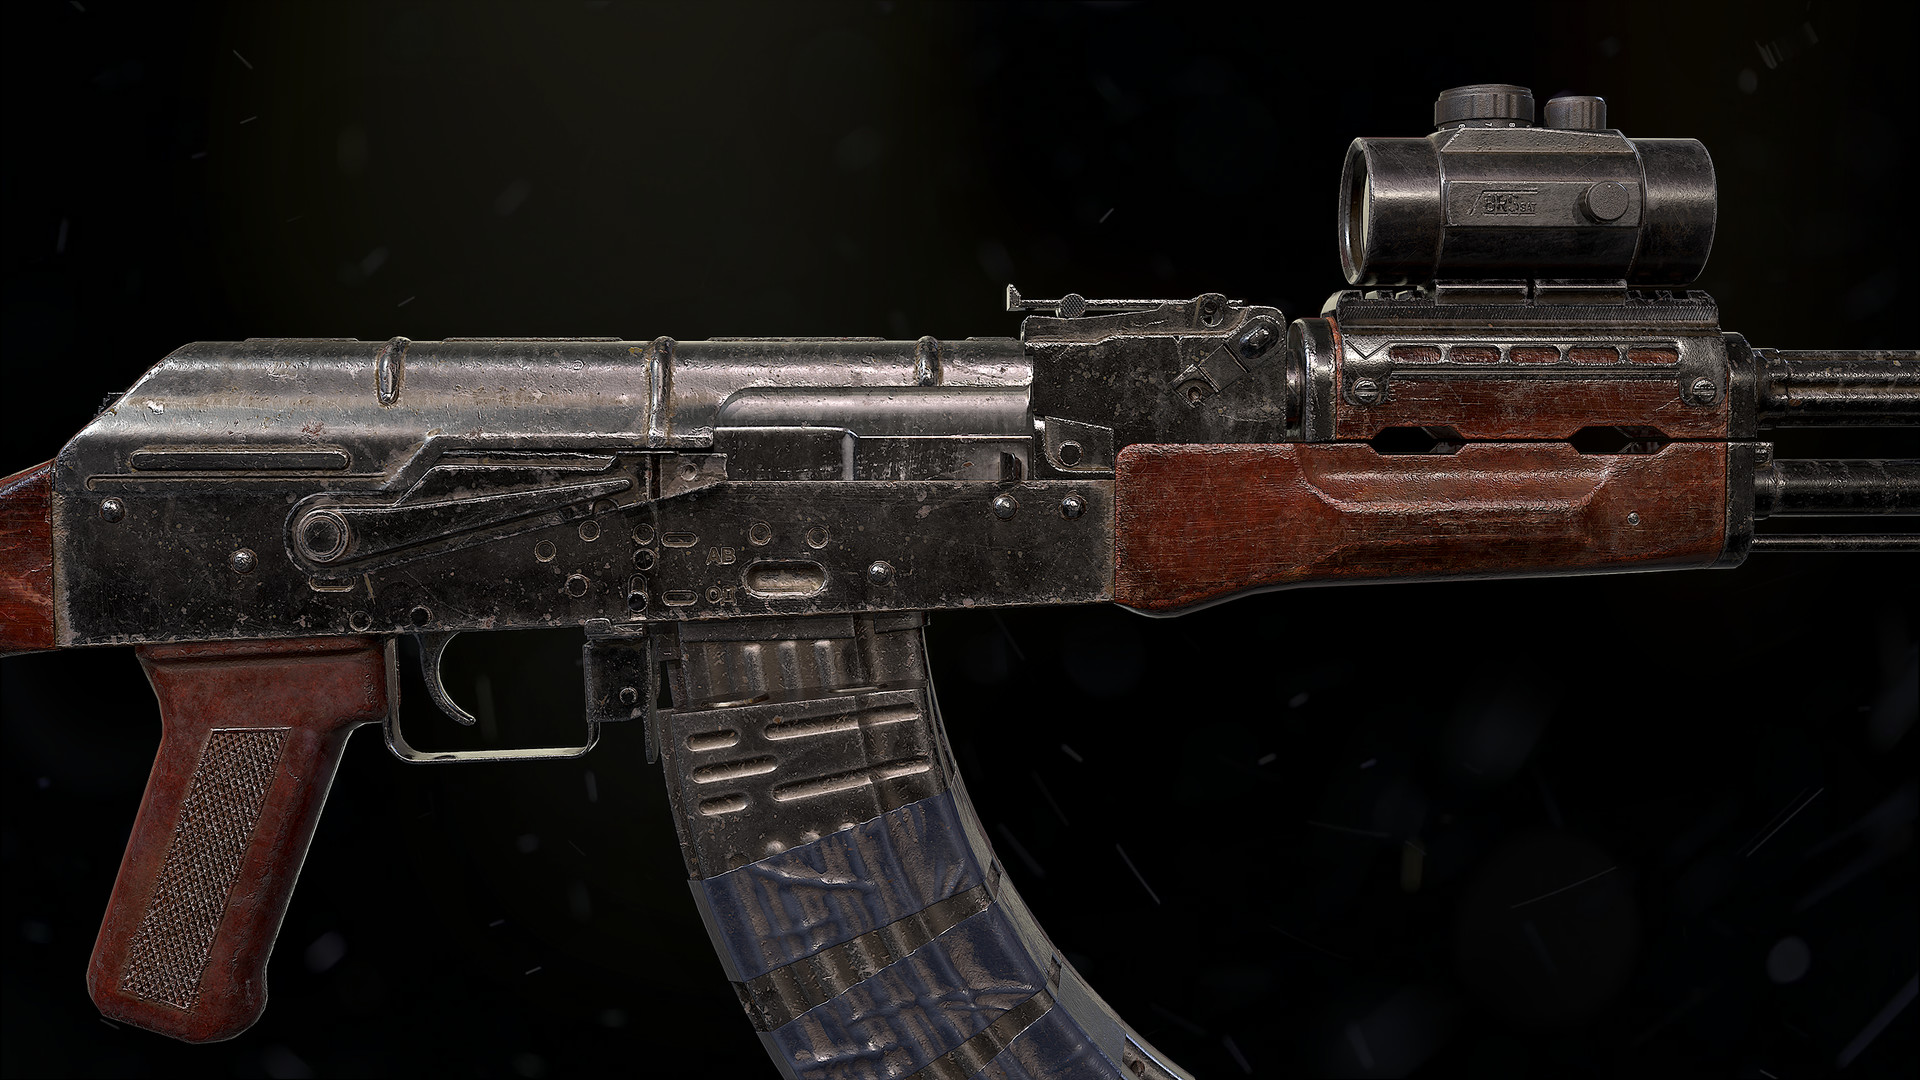 Artstation Akm Old Worn And Modified Oleg Valkov